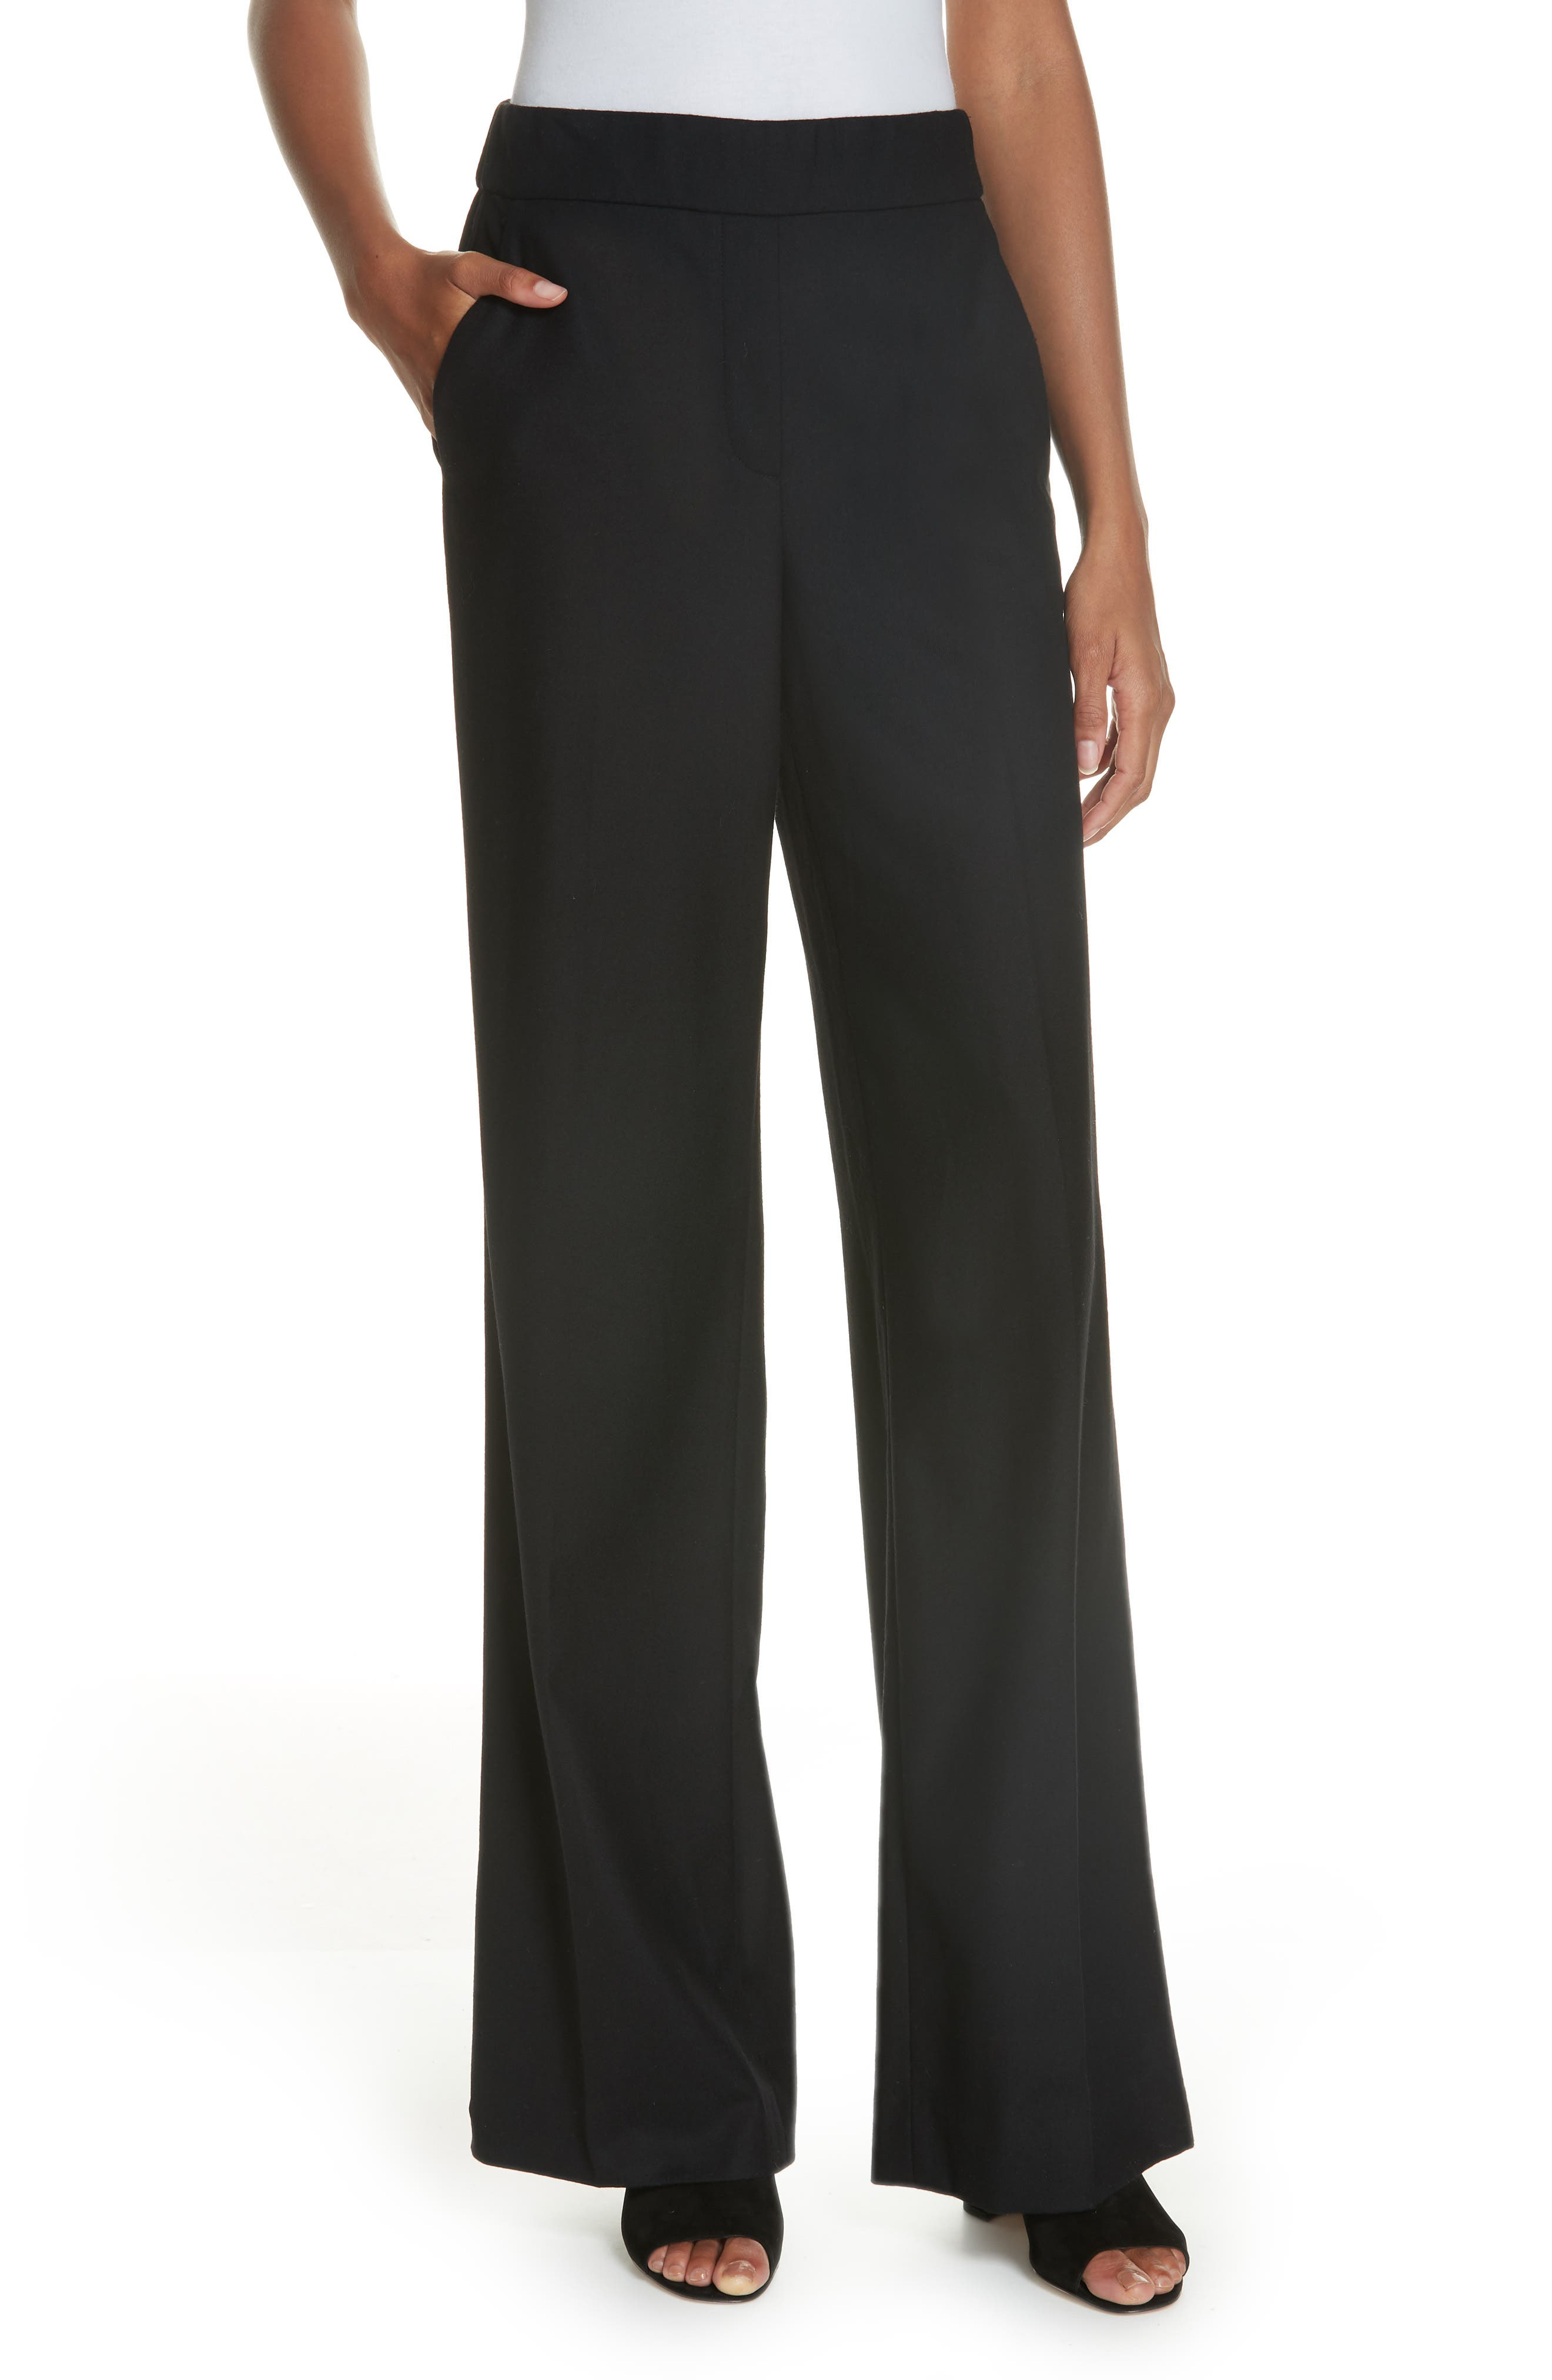 Talbert New Pure Stretch Wool Flare Leg Pants,                         Main,                         color, 001